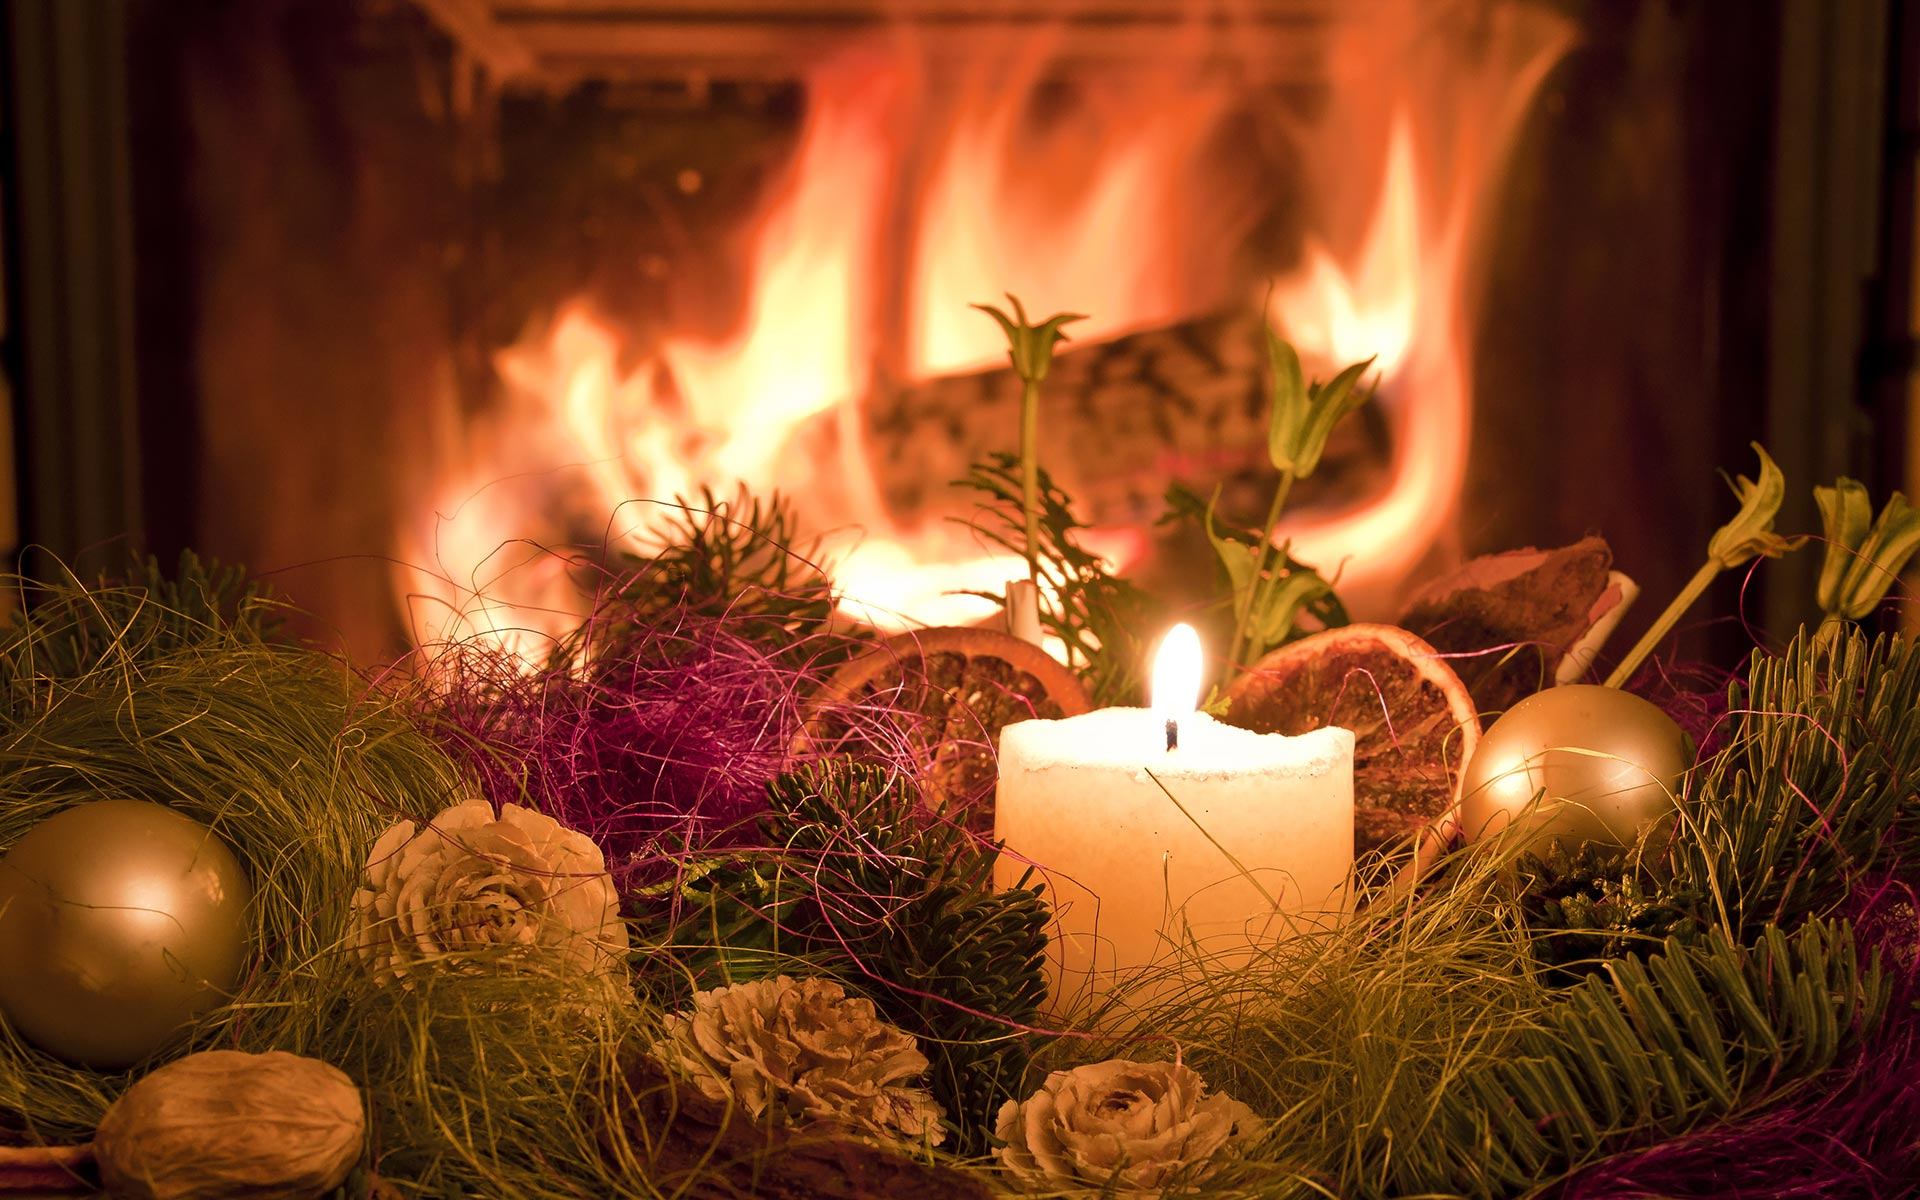 Fireplace Hd Wallpapers